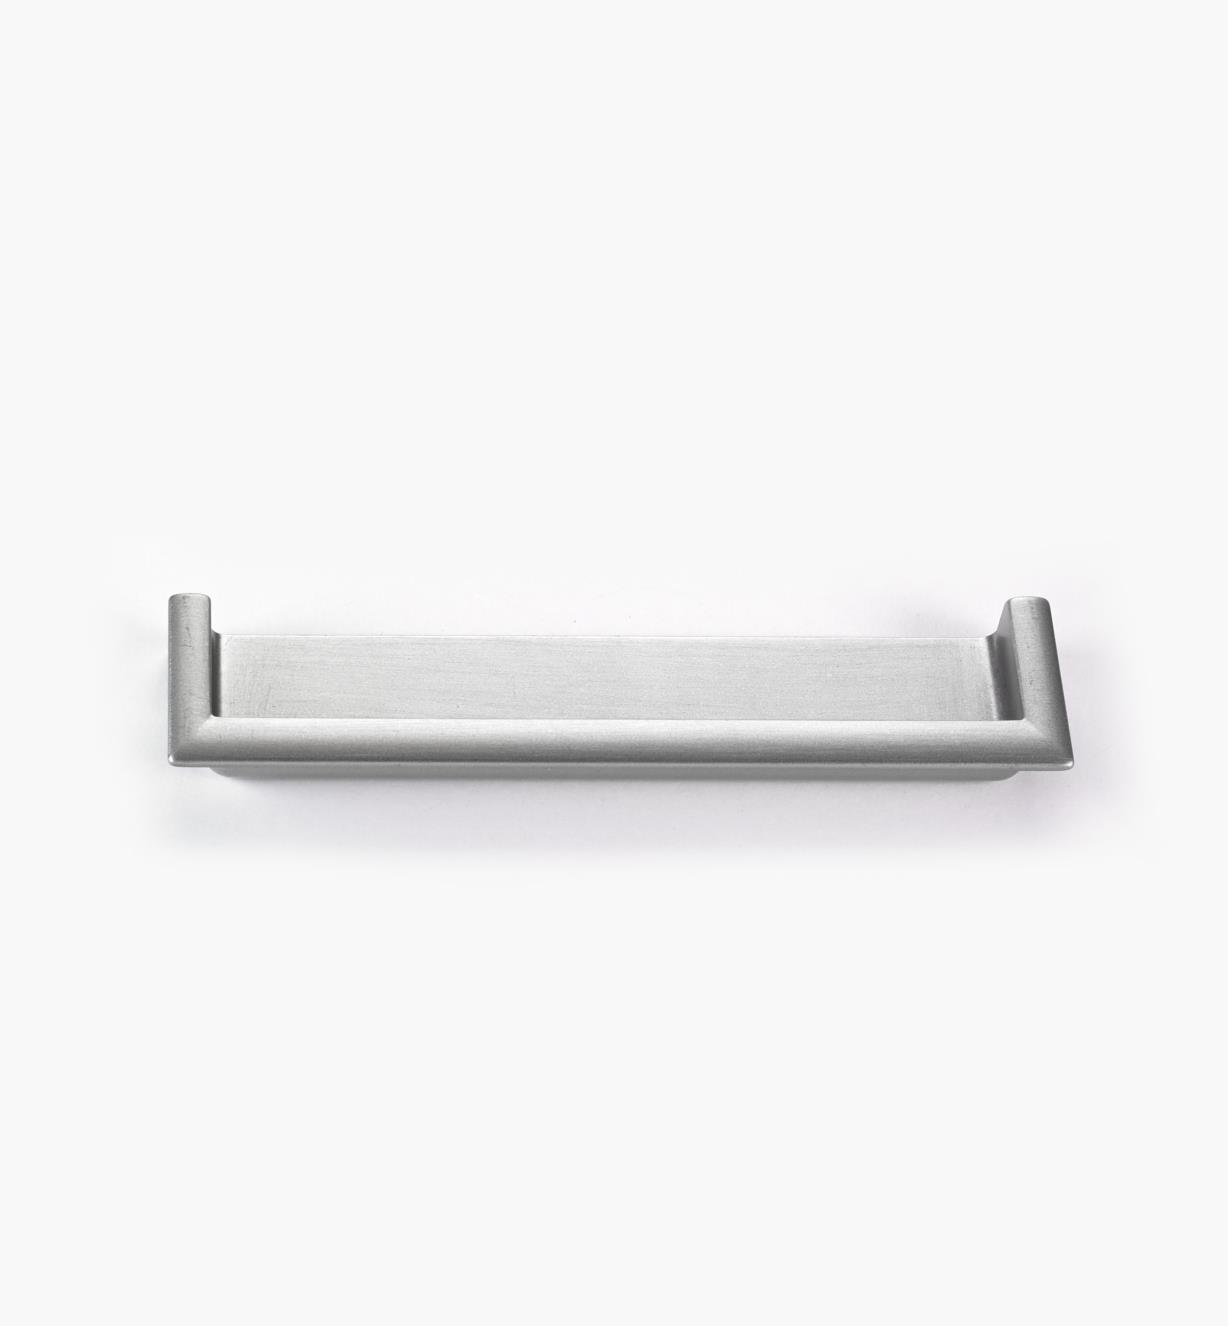 02W3966 - Palladium Recessed Pull, 37mm x 165mm